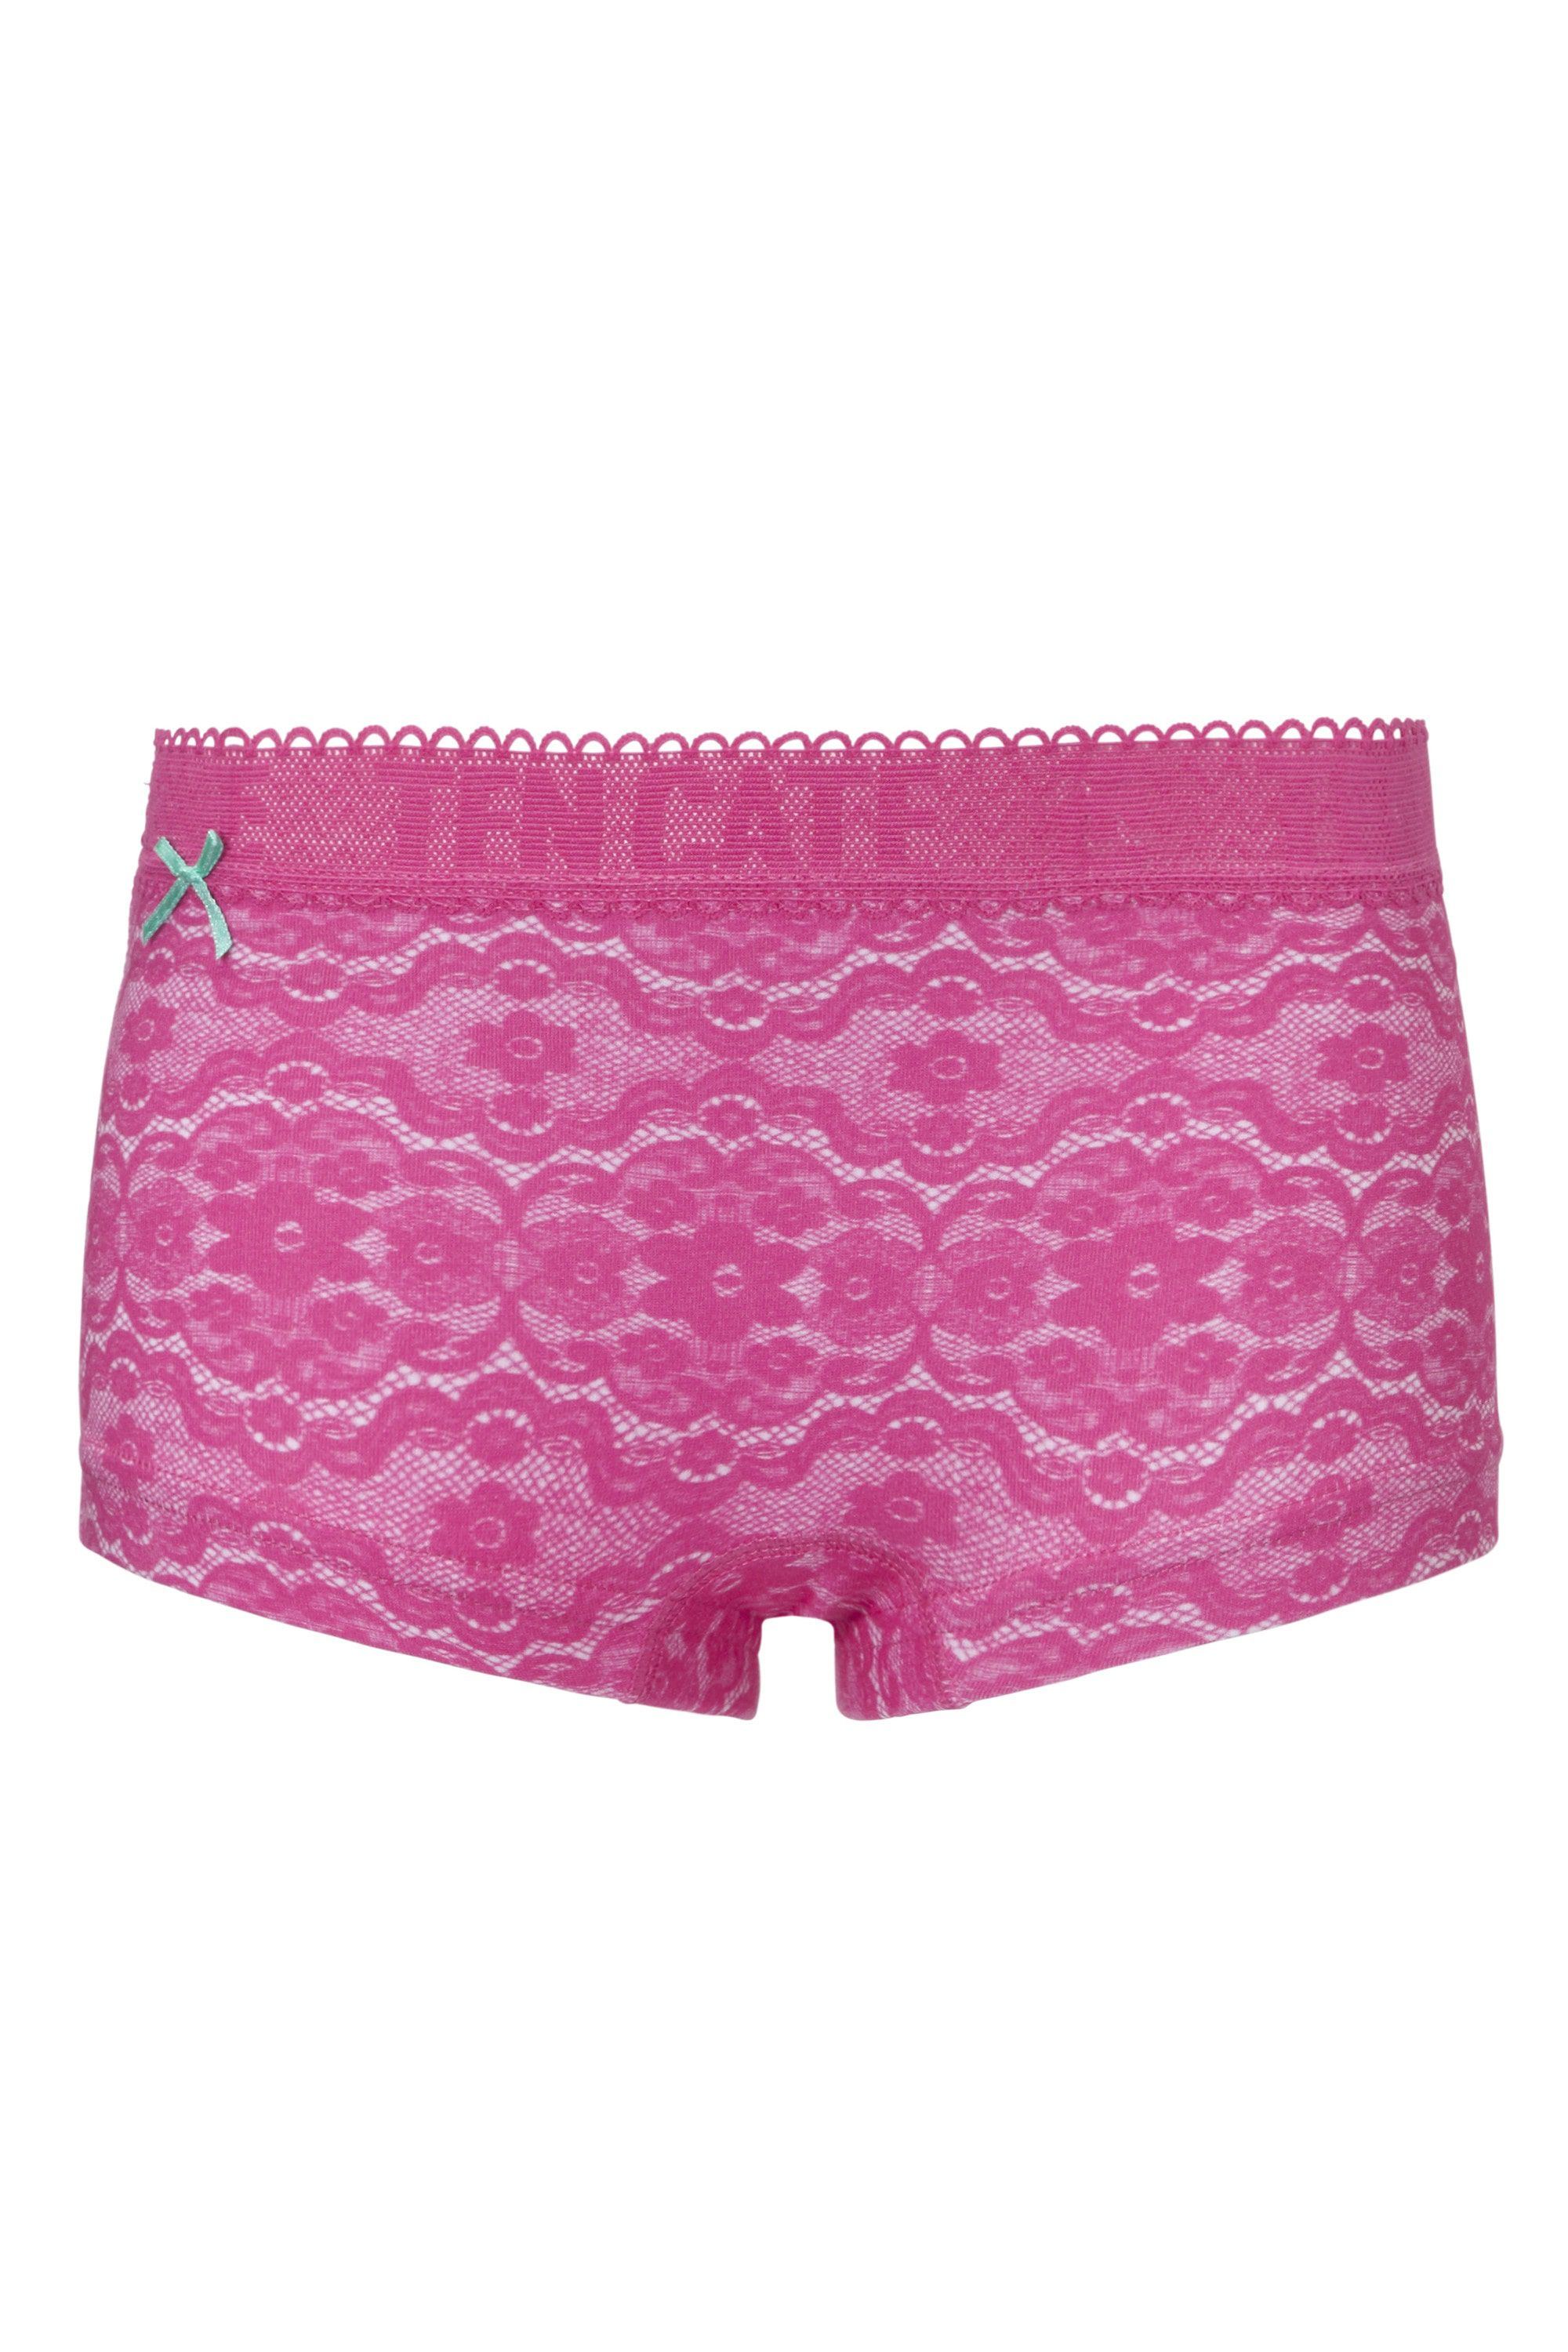 Ten Cate Girls Hipster Lace Pink-146/158